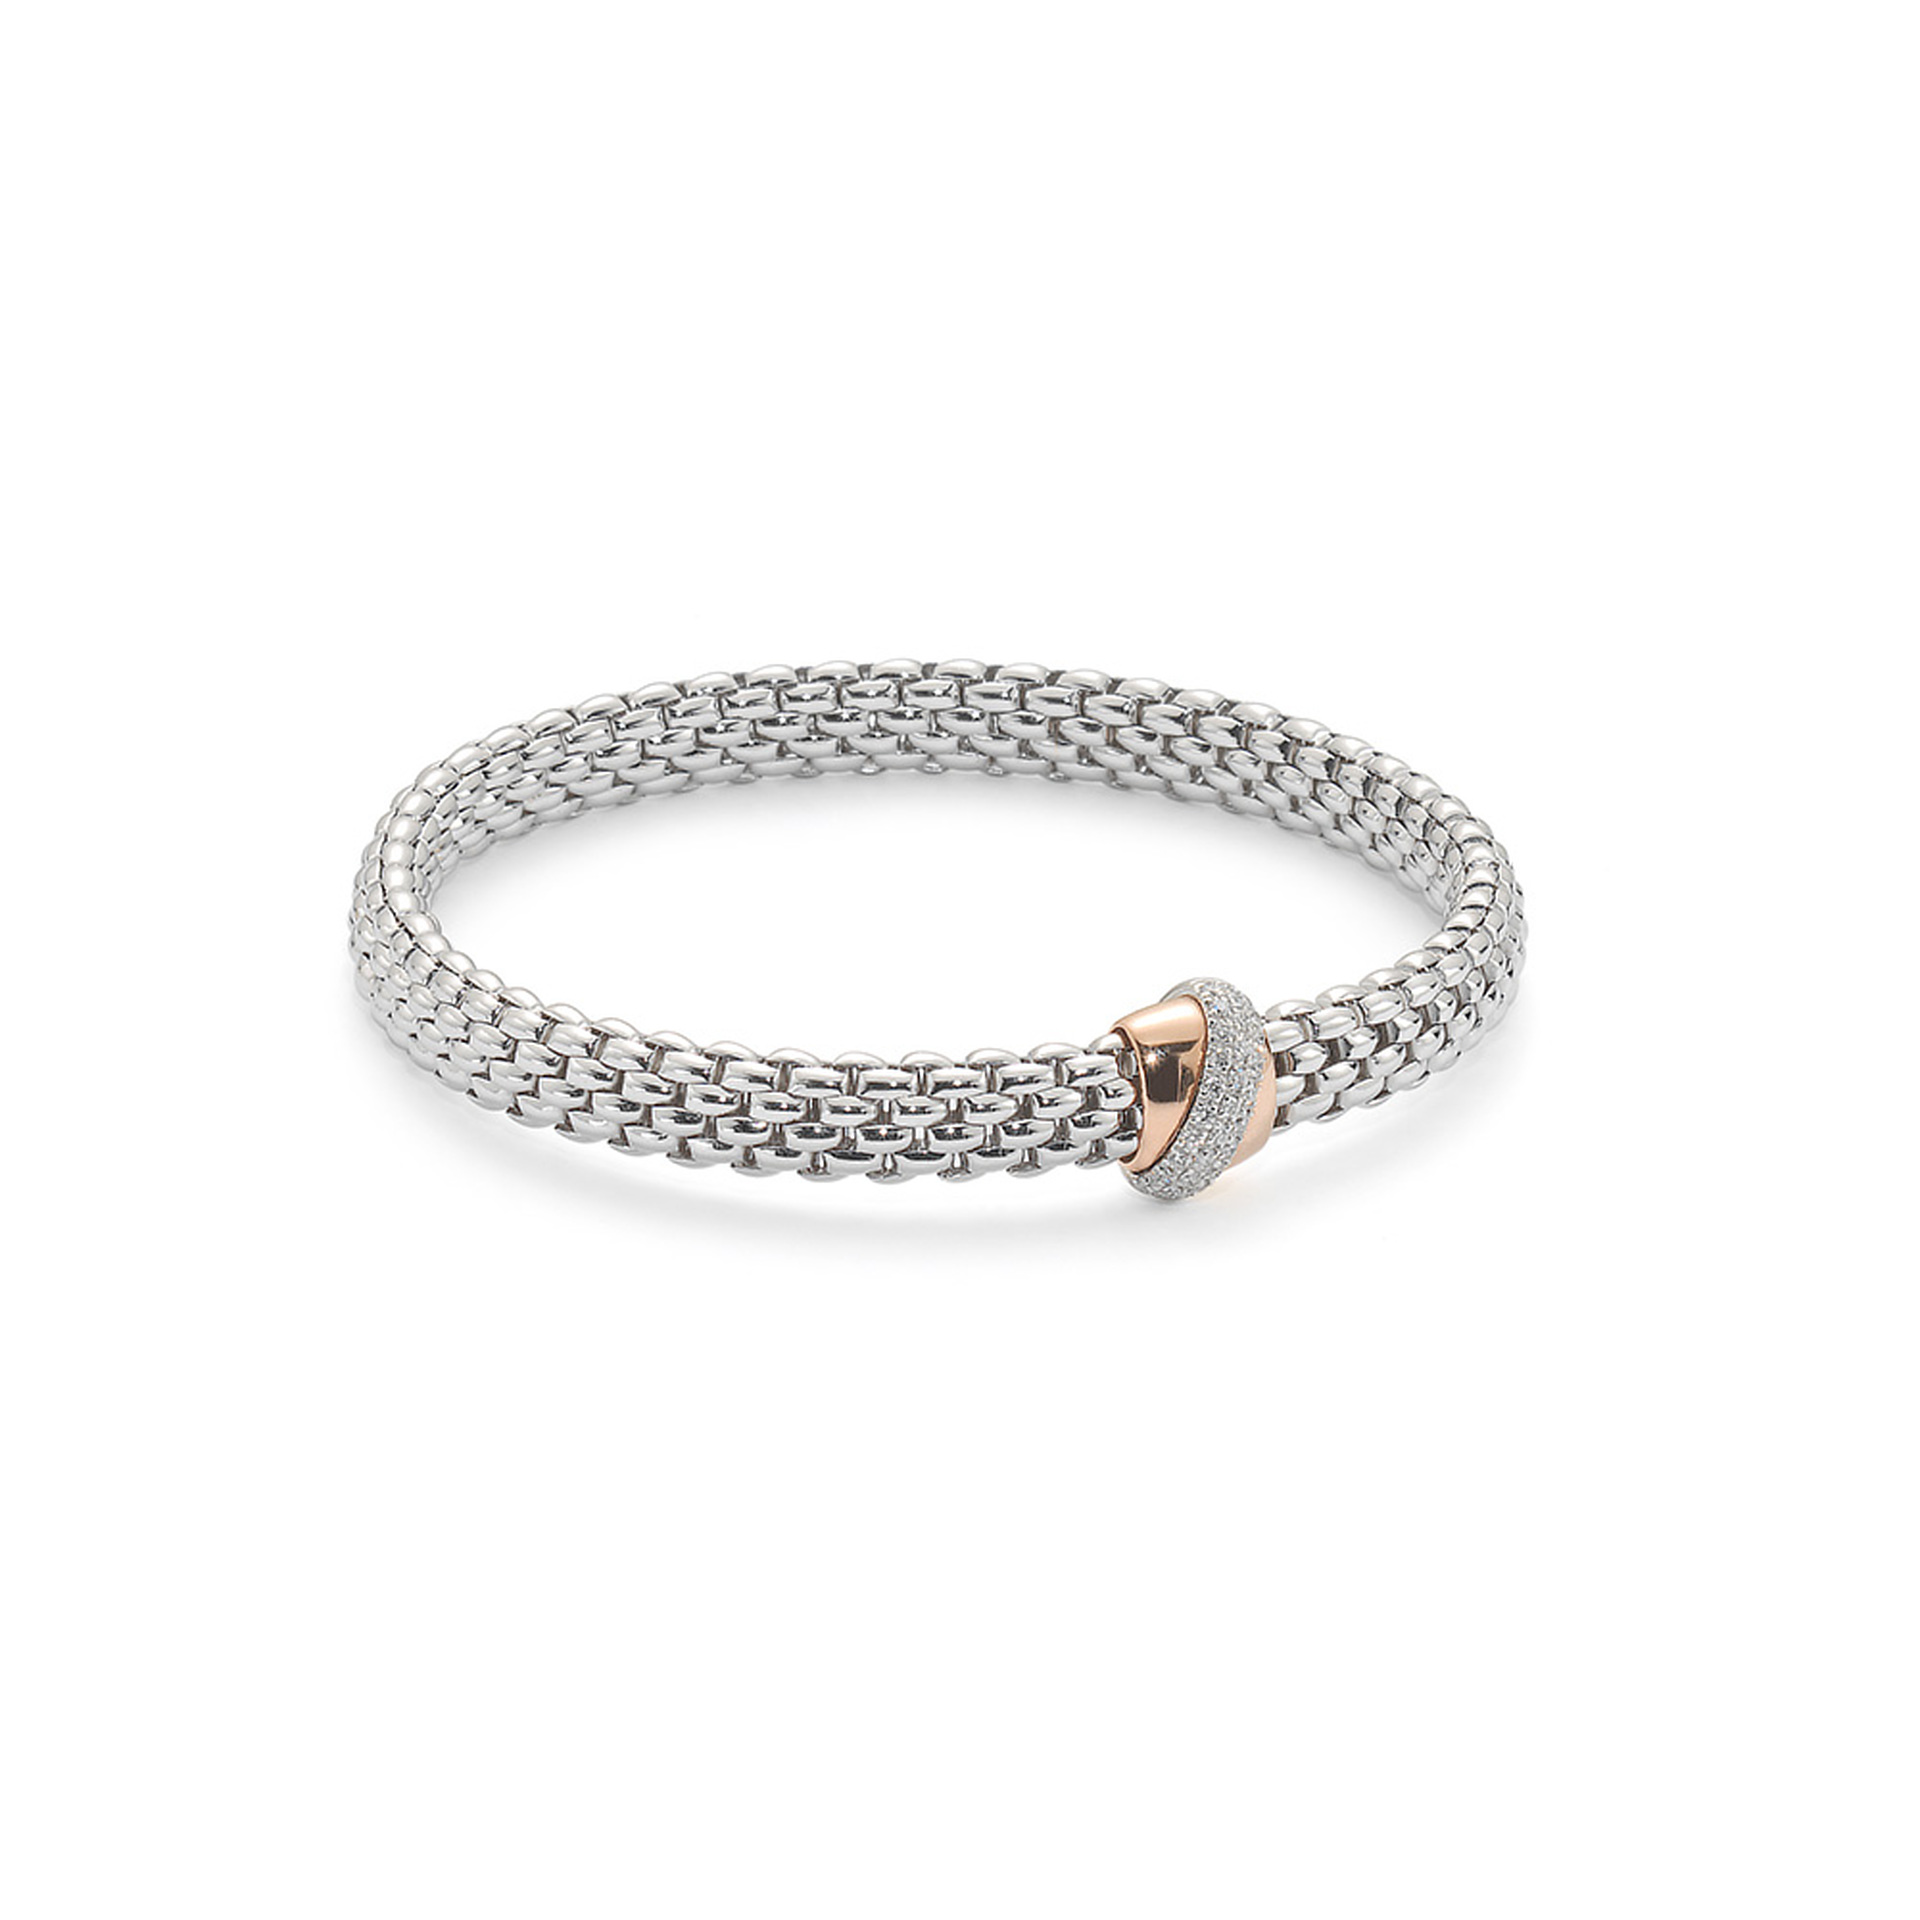 FOPE 18ct White Gold Bracelet Flex'it Vendome with Rose Gold Pave Diamond Set Rondel